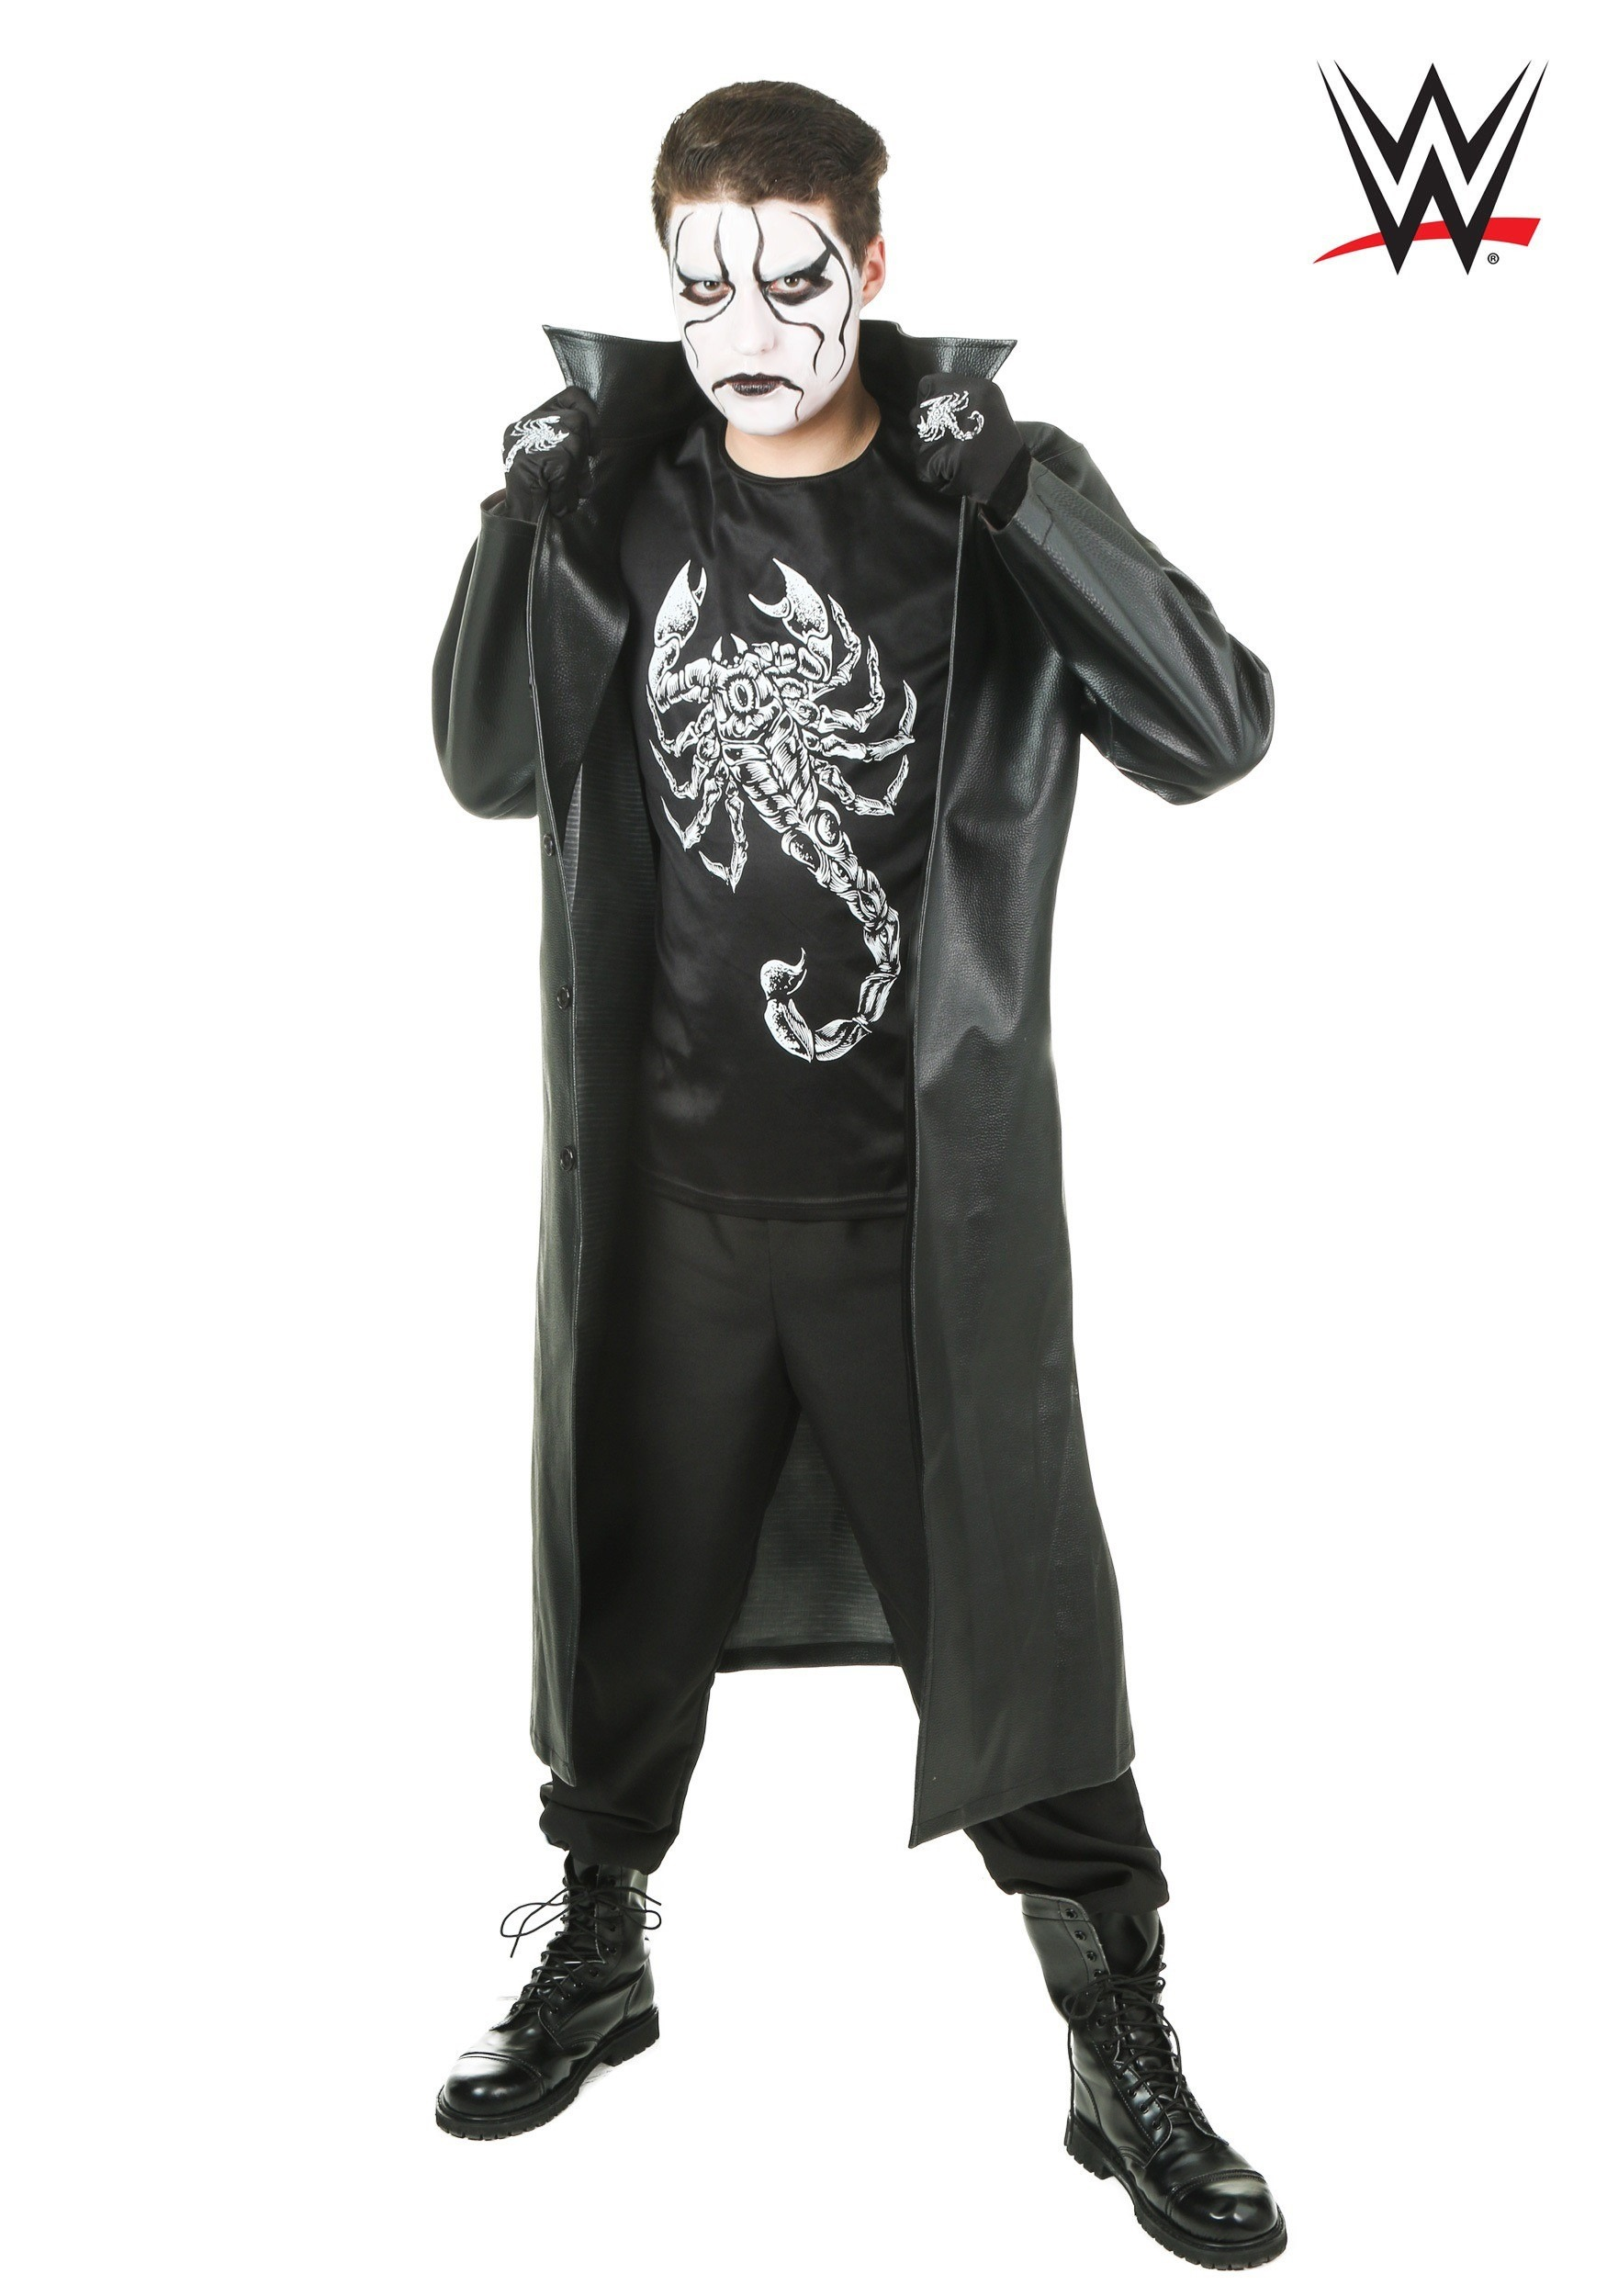 Wrestling Costumes & Exclusive WWE Suits - HalloweenCostumes.com